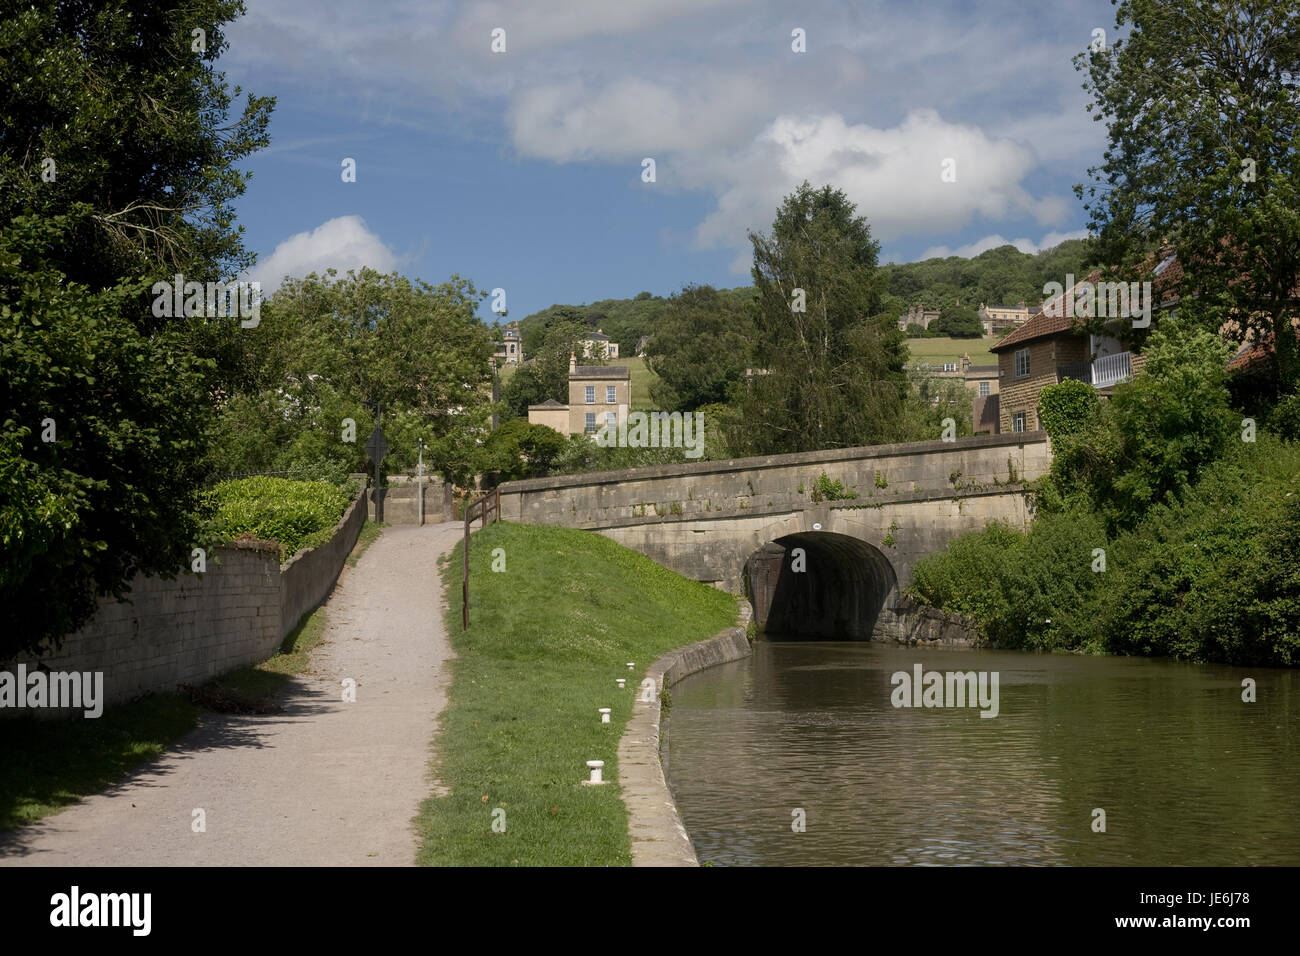 Towpath and Kennet & Avon canal by bridge 190 in Bath - Stock Image